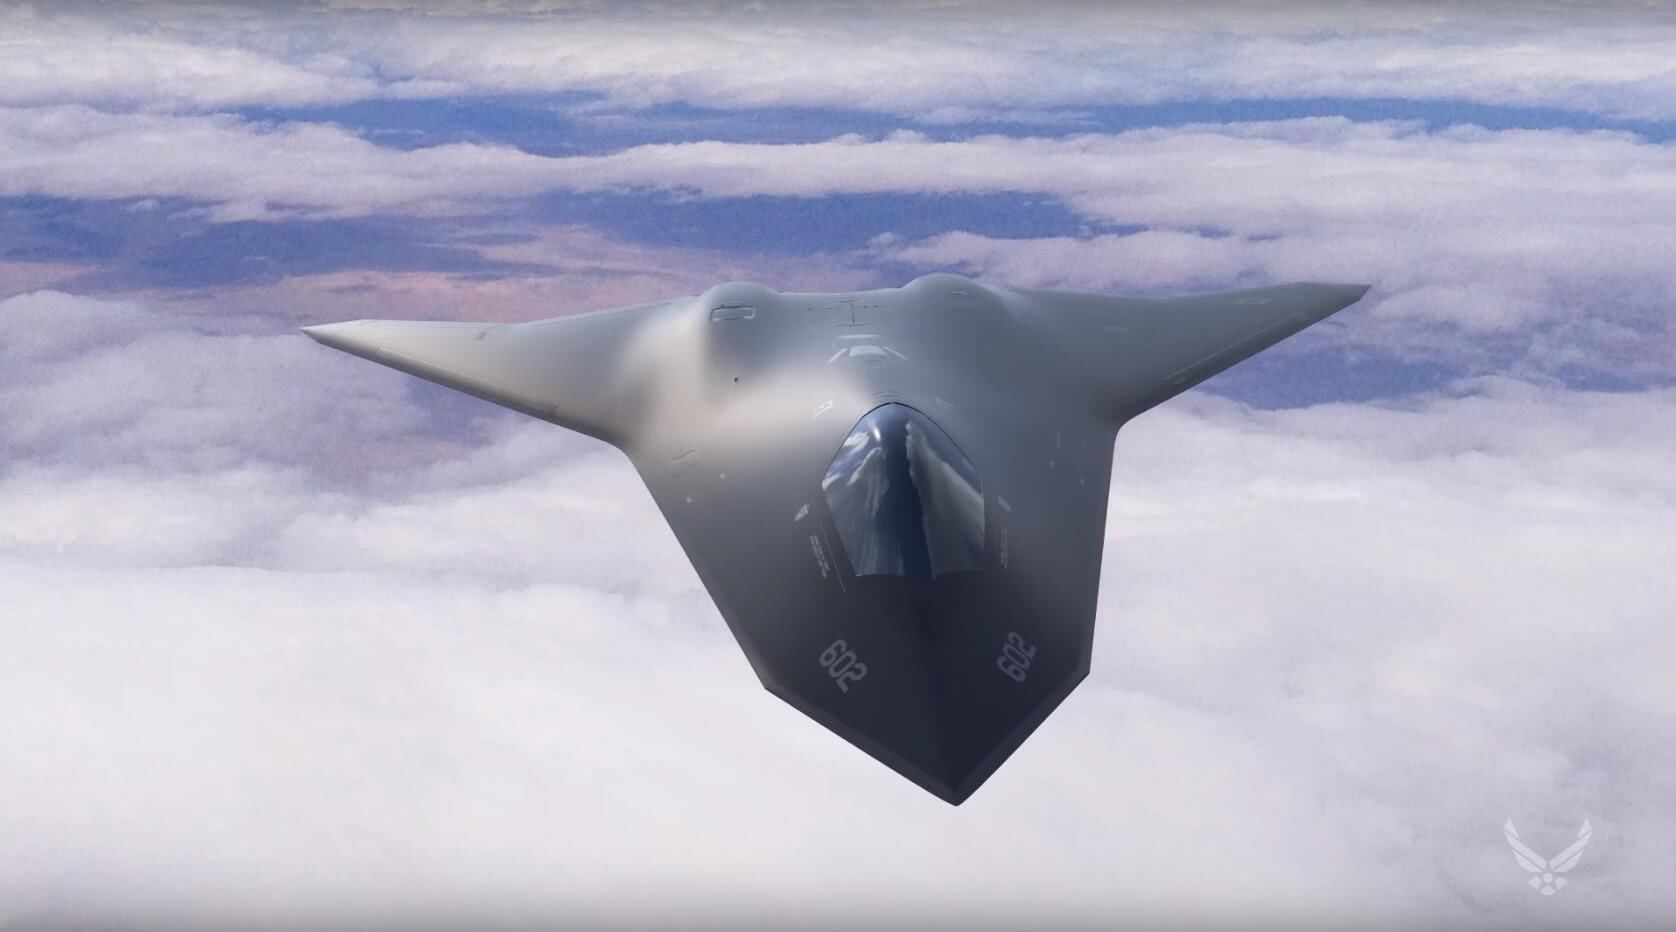 Beyond the F-22 or F-35: What Will the Sixth-Generation Jet Fighter Look Like? | The National Interest